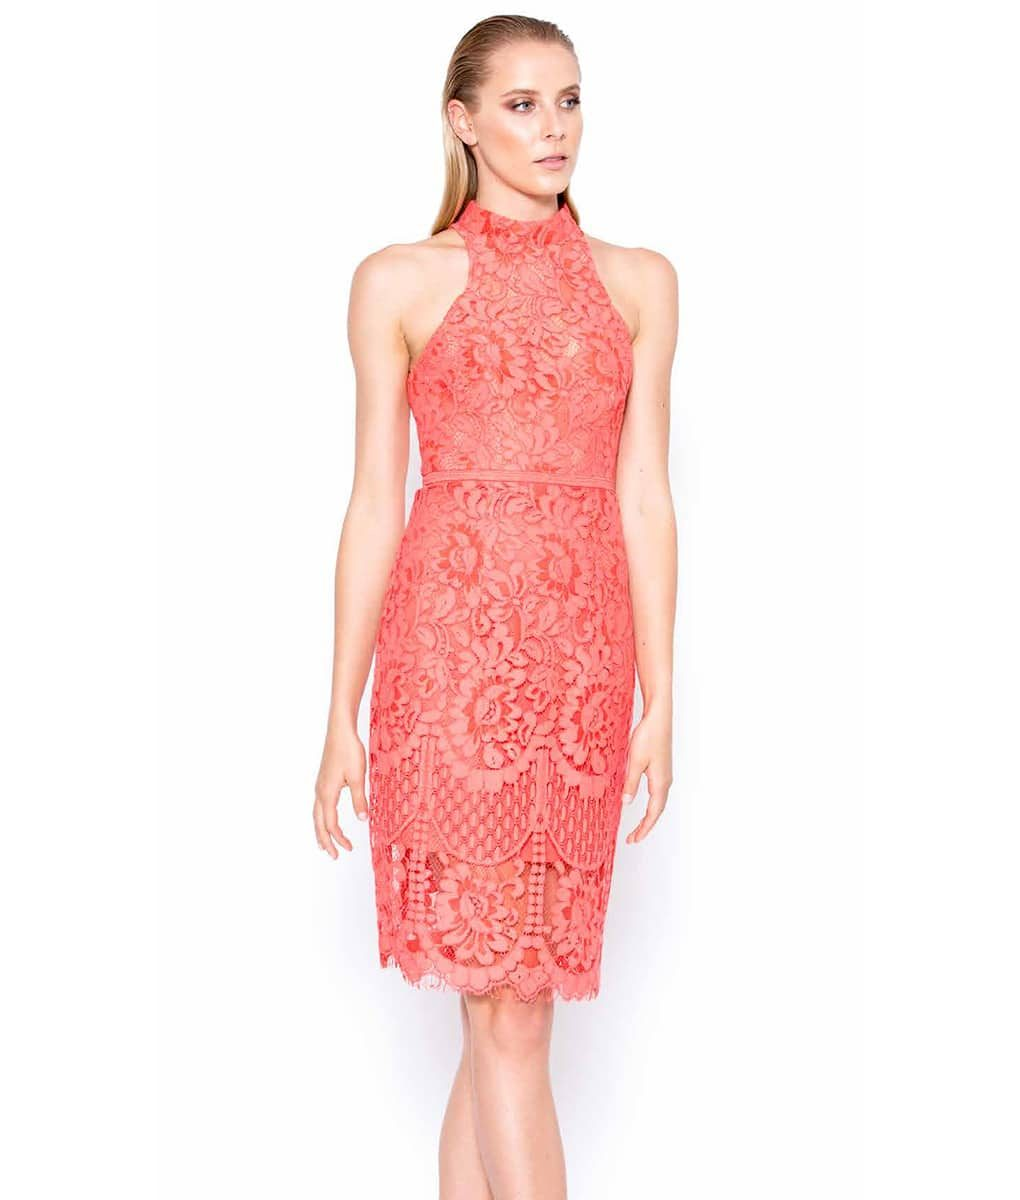 540ad8d44b3ba Lumier By Bariano Coral Lace Dress | Alila Boutque